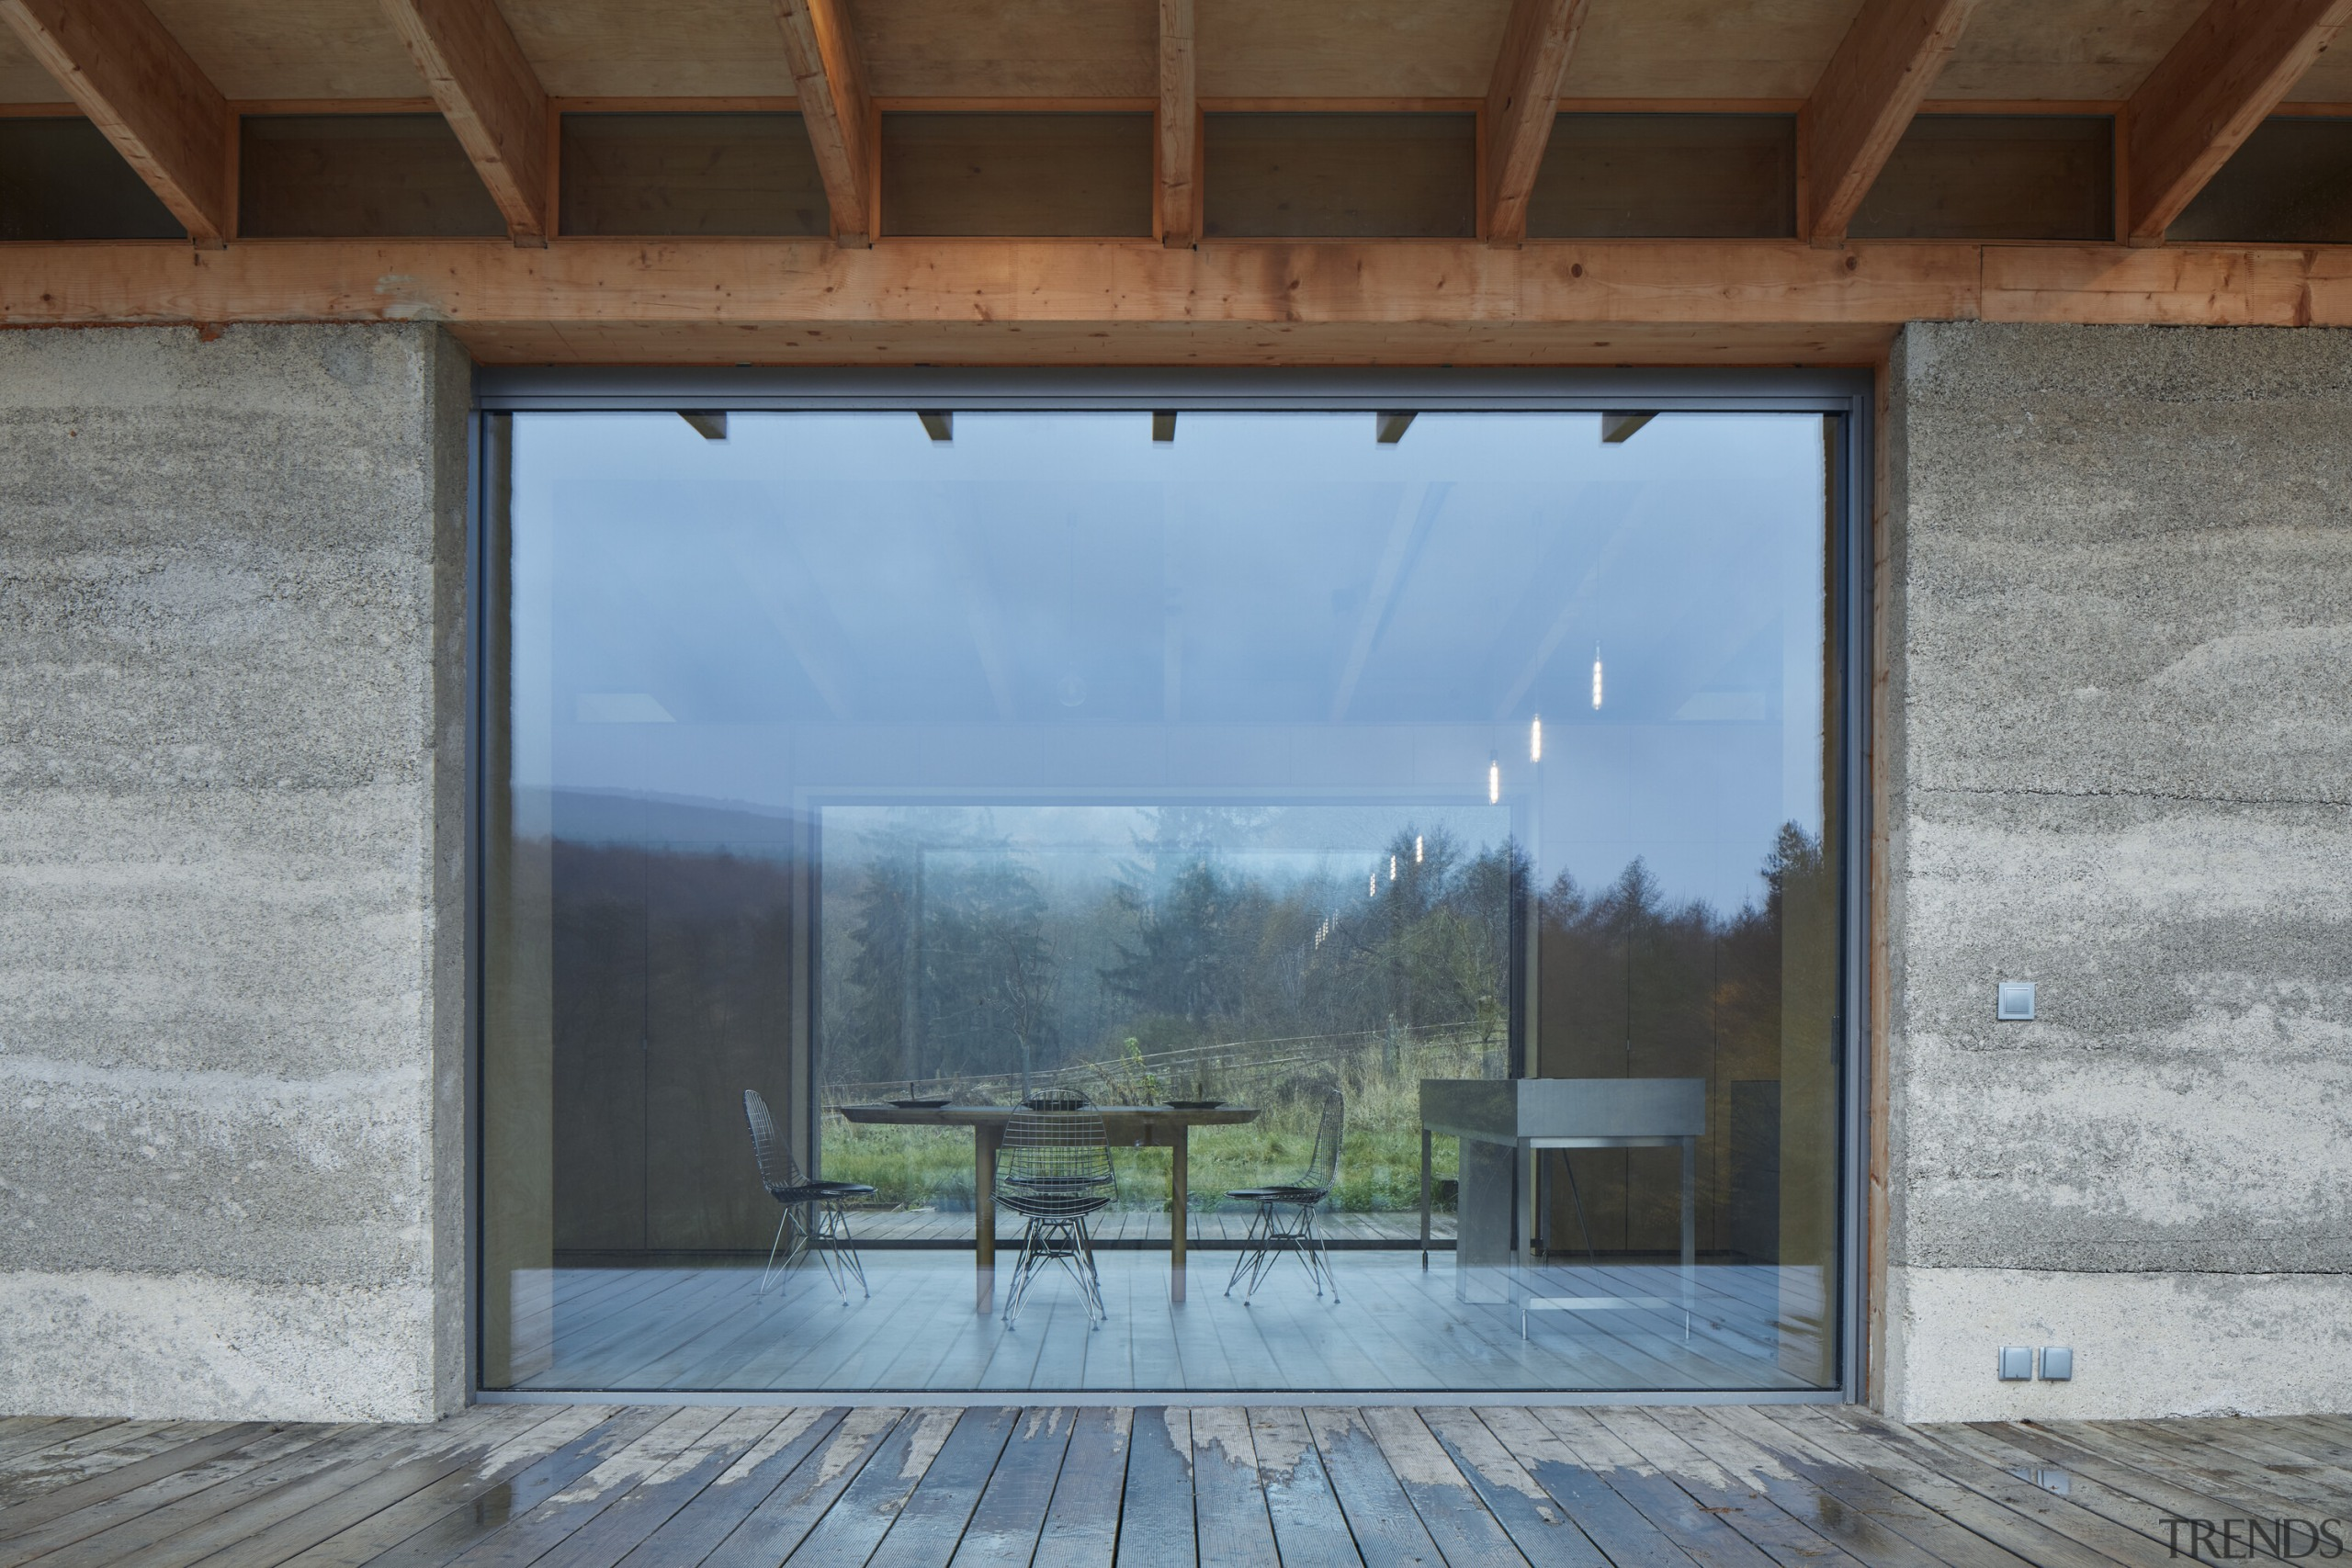 Connecting with the natural elements, the house itself